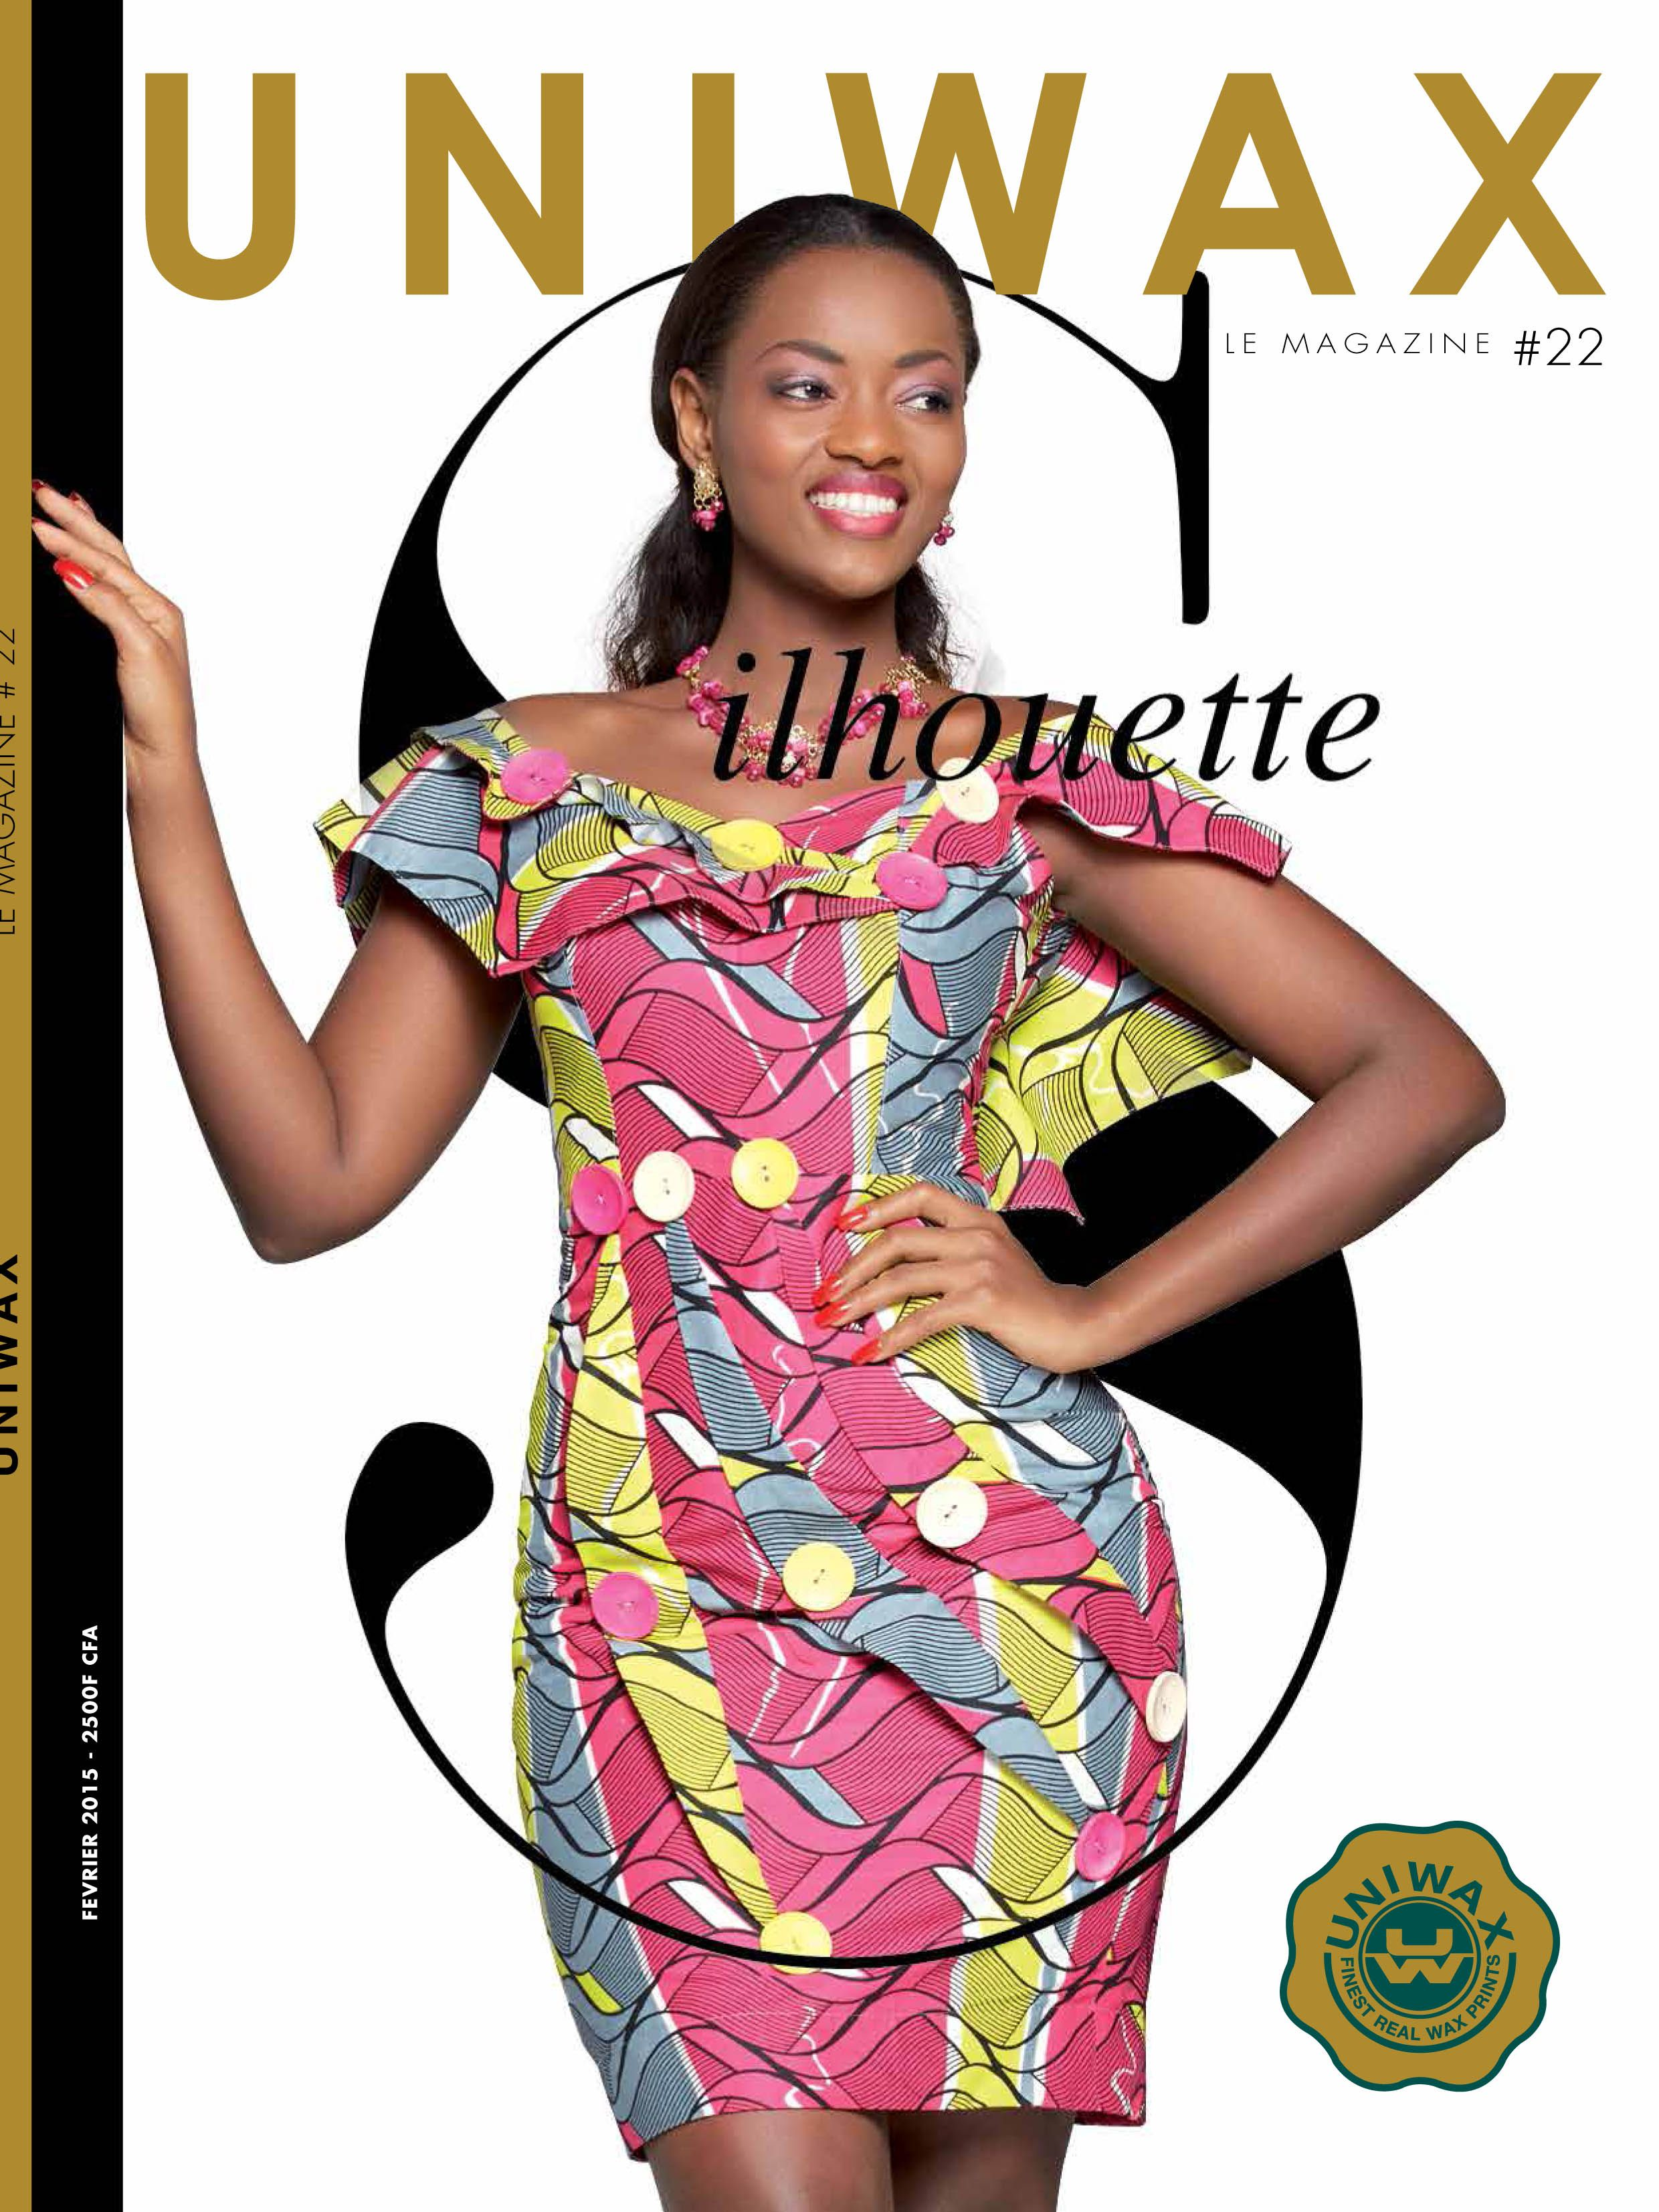 uniwax magazine 22 wax fashion mode africaine uniwax magazines covers pinterest african. Black Bedroom Furniture Sets. Home Design Ideas